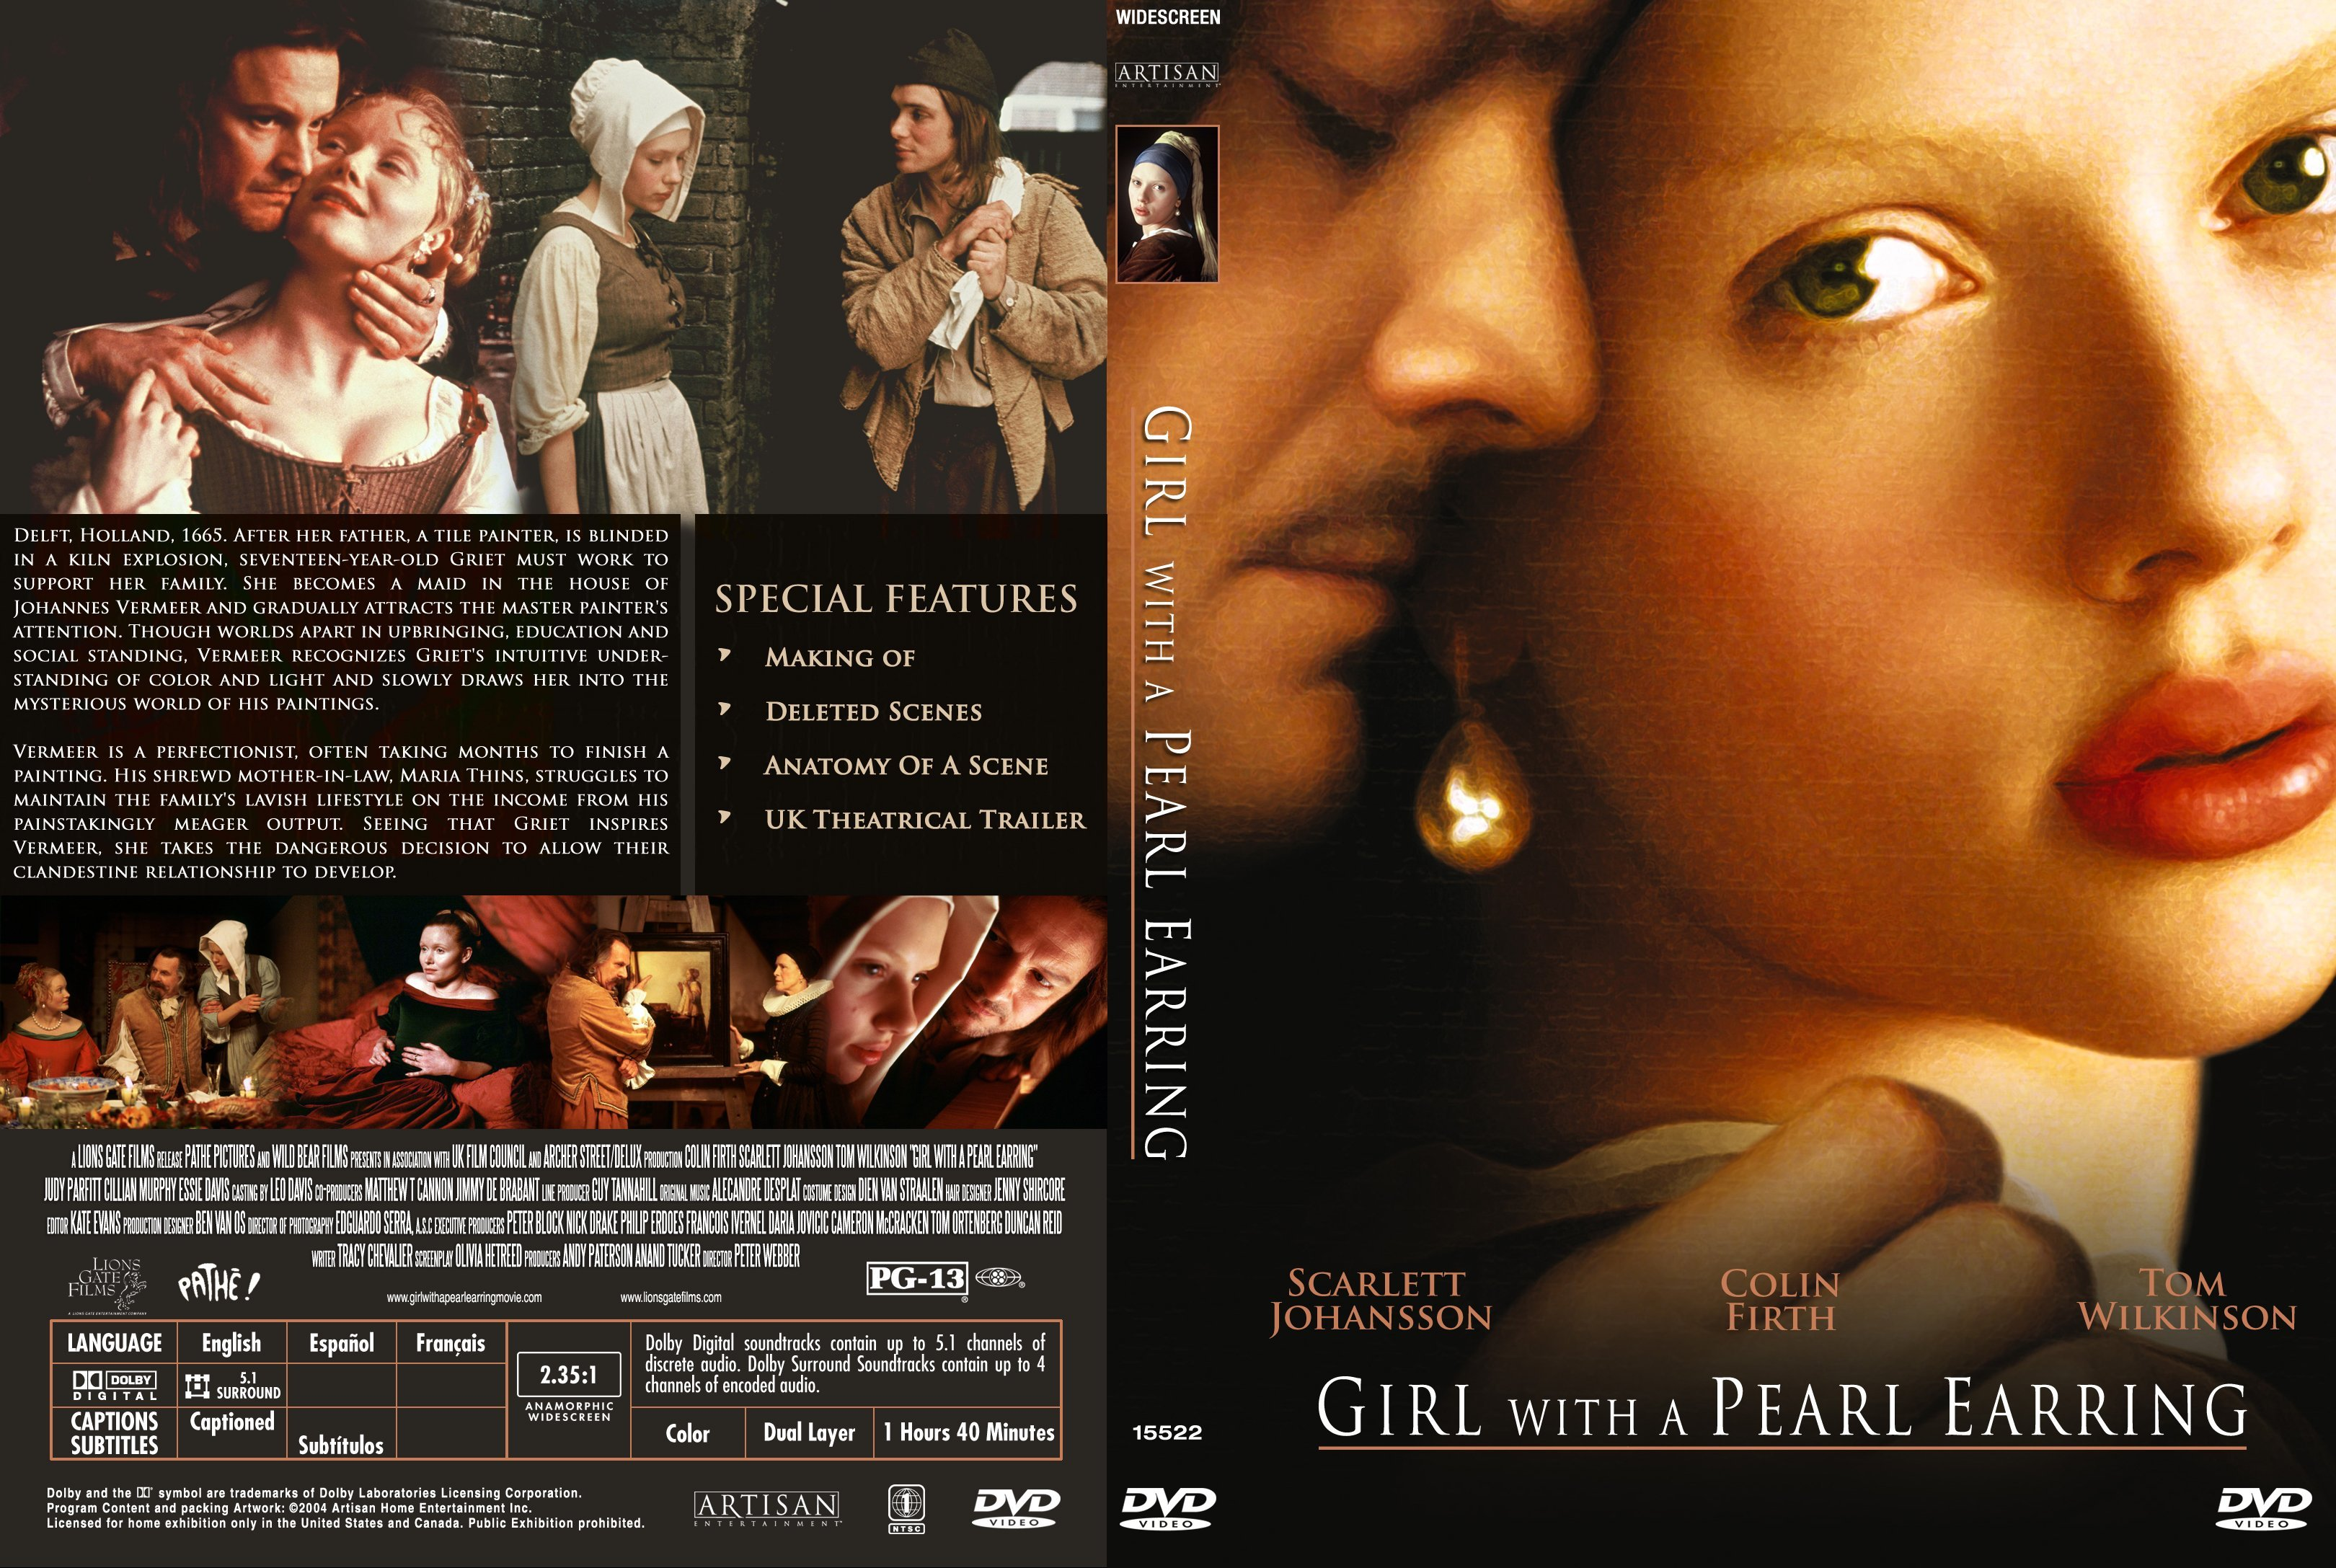 girl with a pearl earring what is the relationship between maria thins and griet